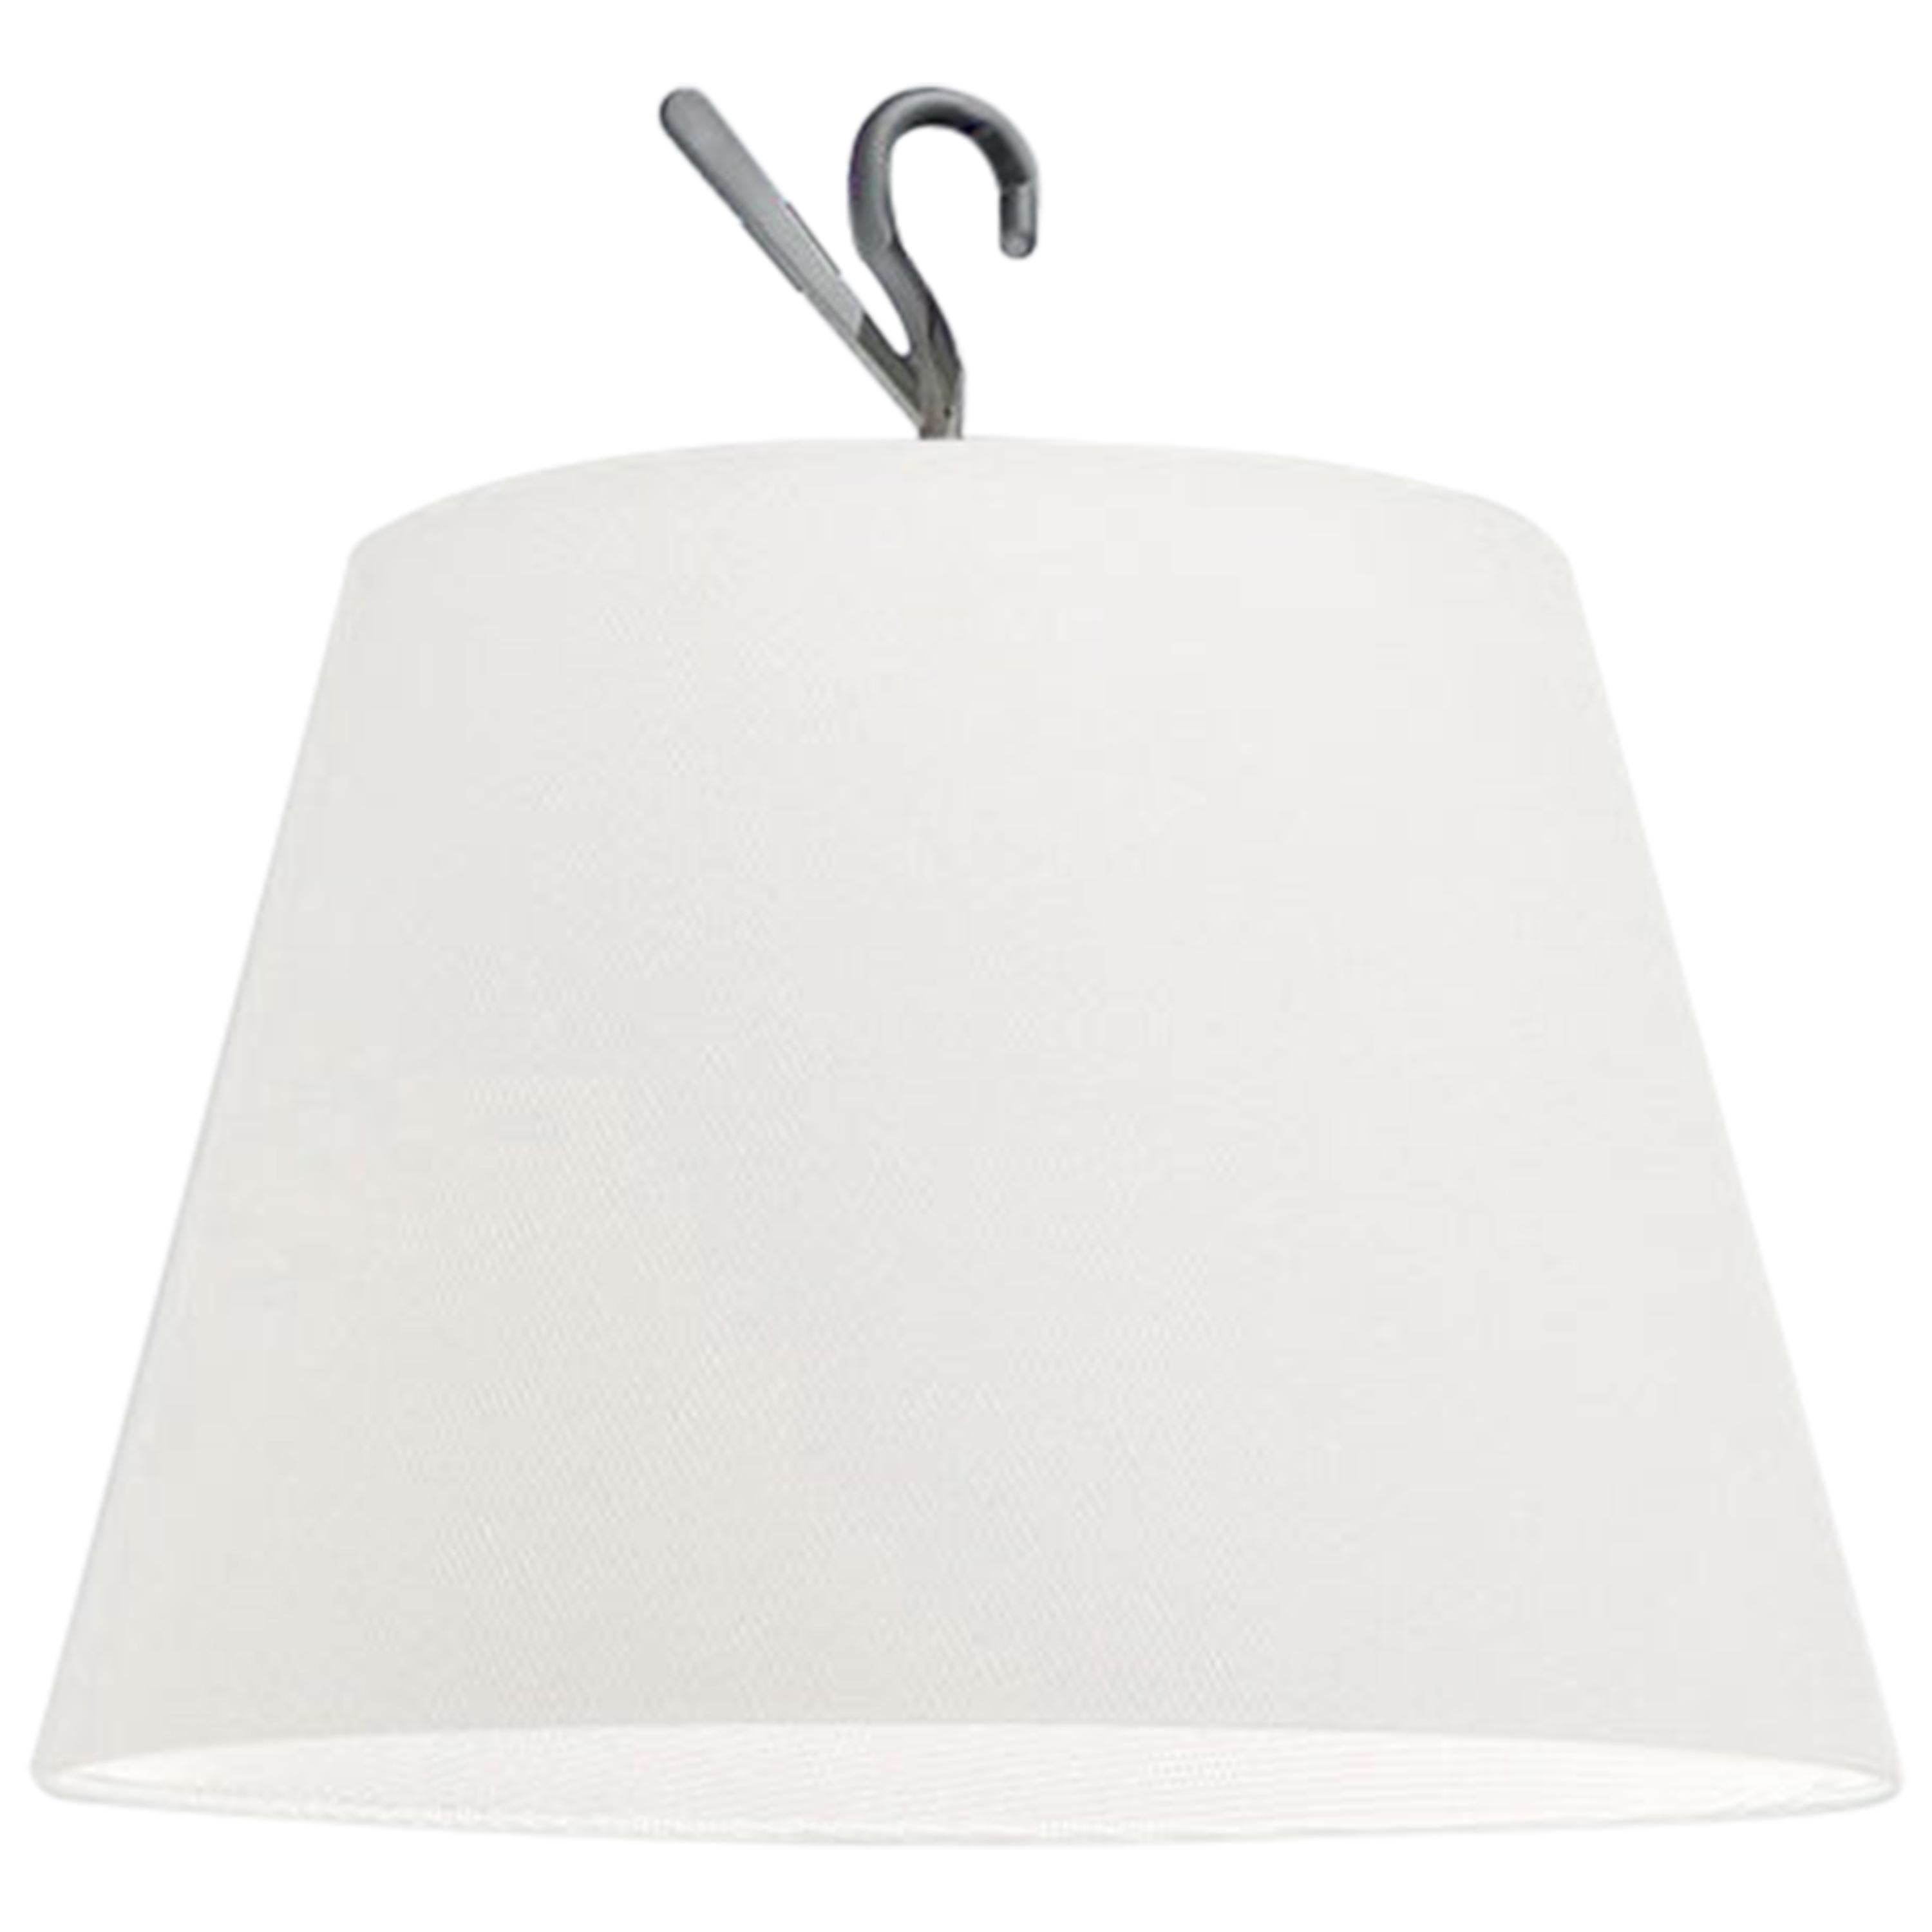 Artemide Tolomeo Hook Lamp in White by Michele De Lucchi, Giancarlo Fassina